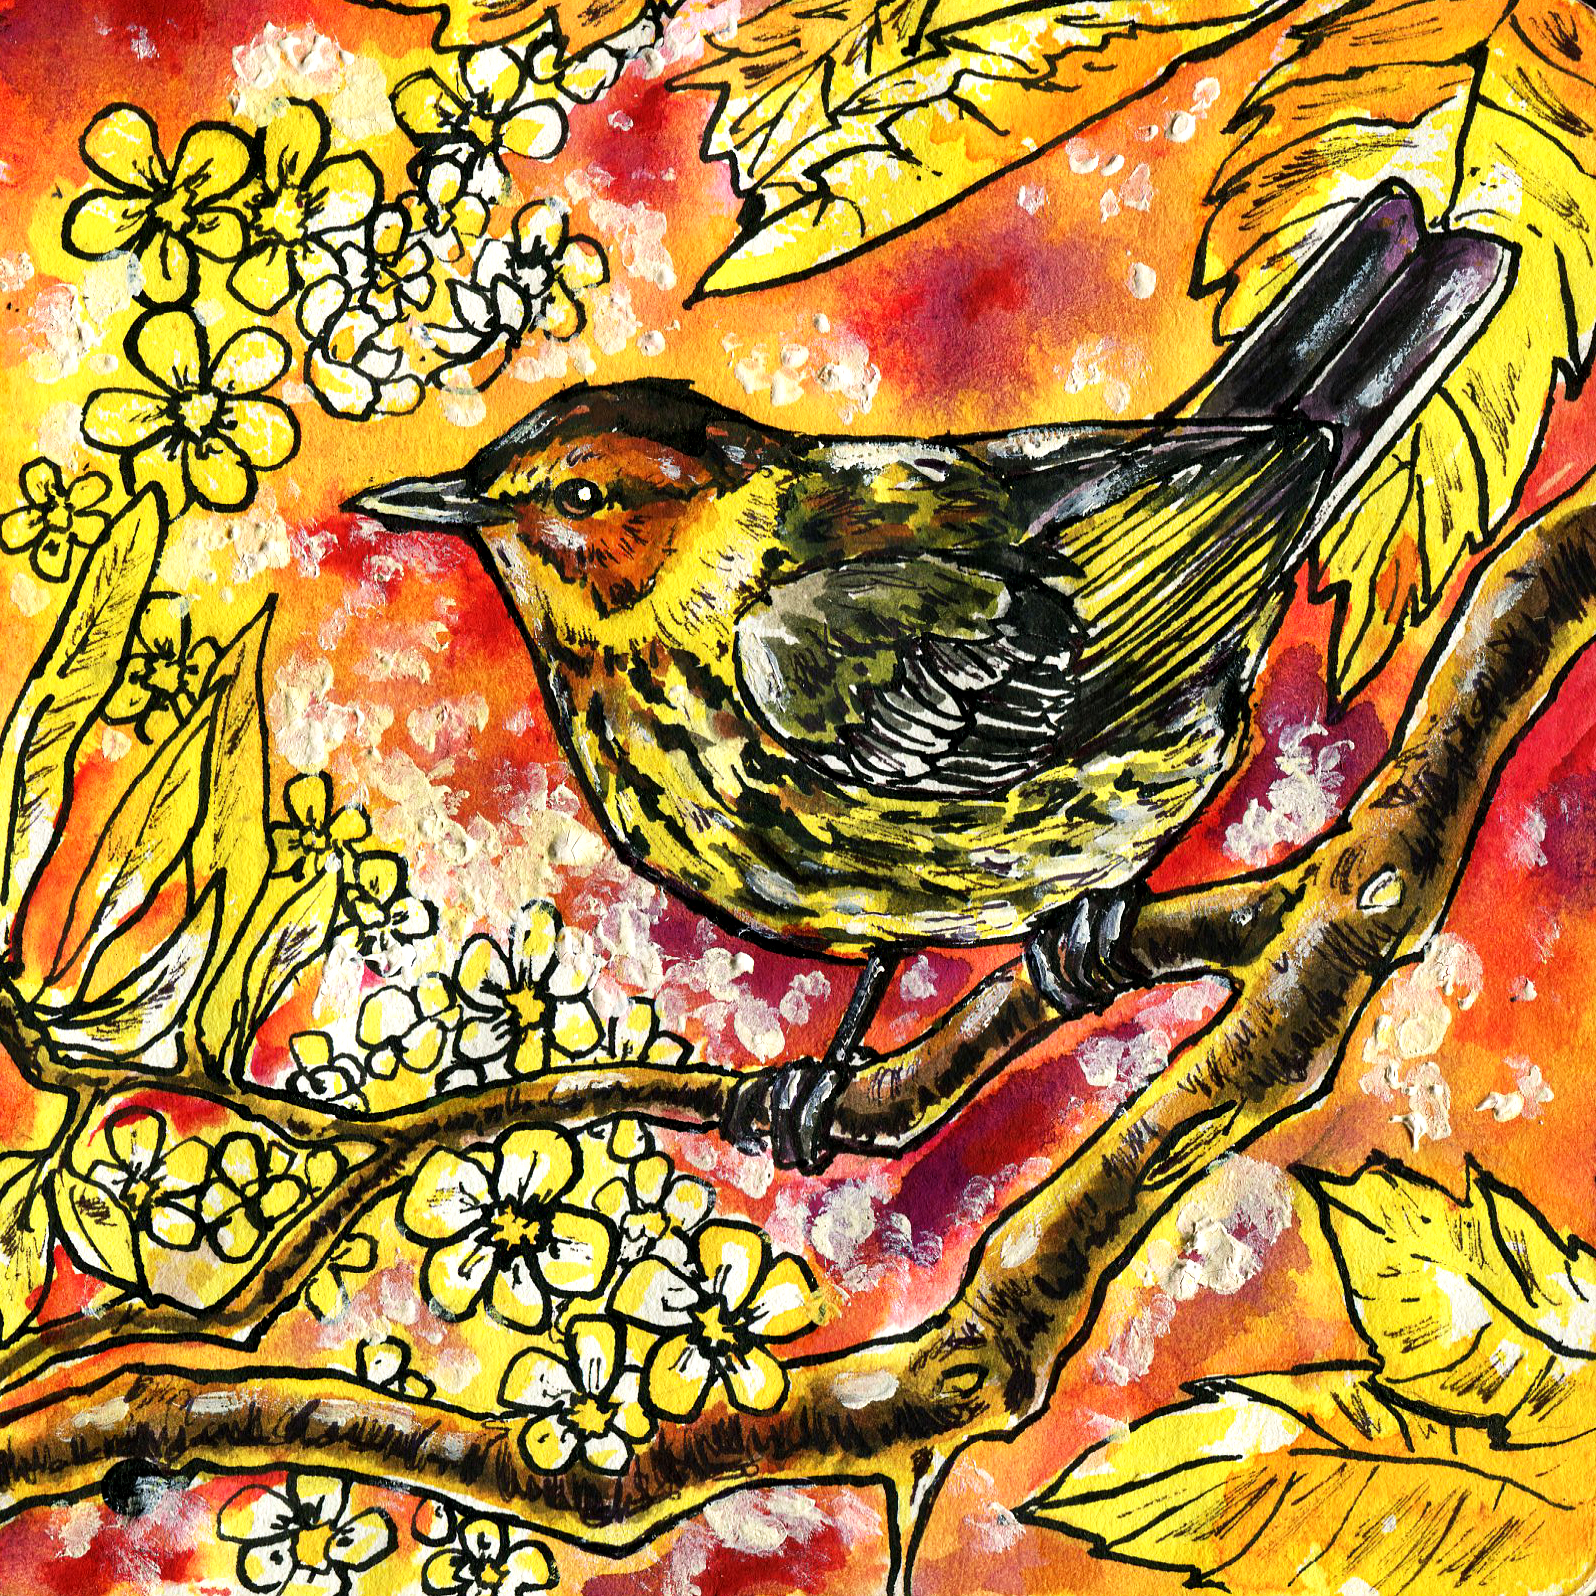 395. Cape May Warbler